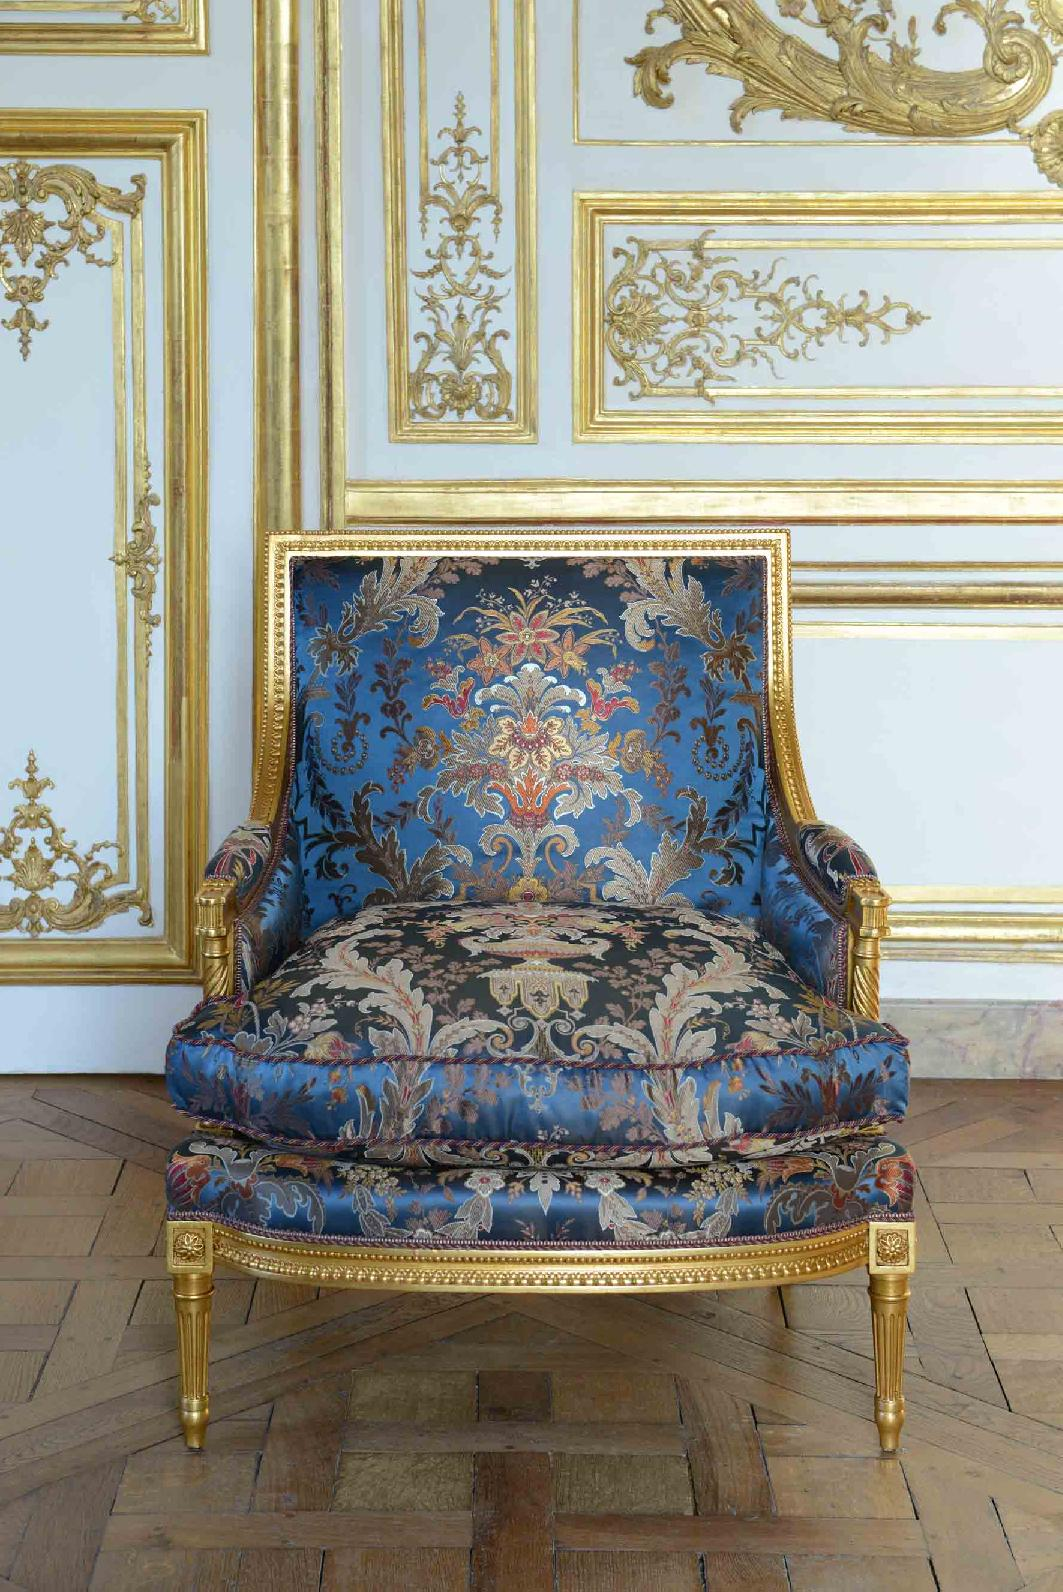 Paris Deco Off 2019 - The Best of Upholstery Fabrics paris deco off 2019 Paris Deco Off 2019 – The Best of Upholstery Fabrics The Best of Upholstery Fabrics Paris Deco Off 2019 2 6